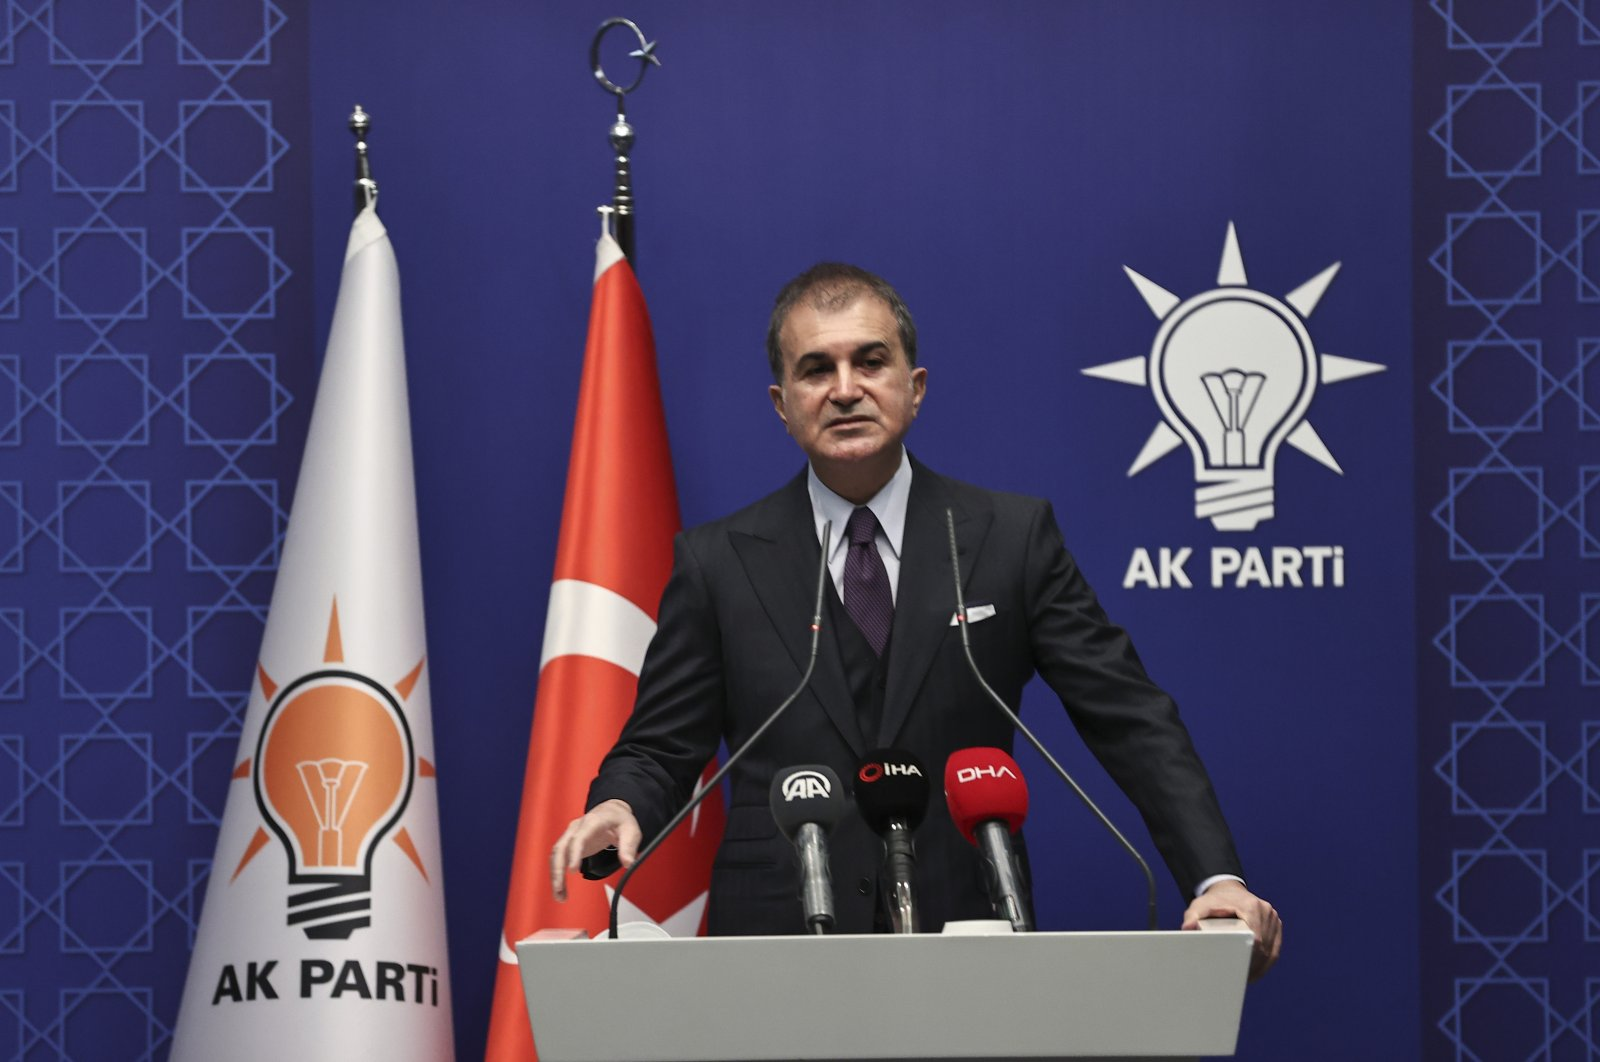 Ruling Justice and Development Party's (AK Party) Spokesperson Ömer Çelik addresses reporters after a party meeting in the capital Ankara, Jan. 4, 2021. (AA Photo)